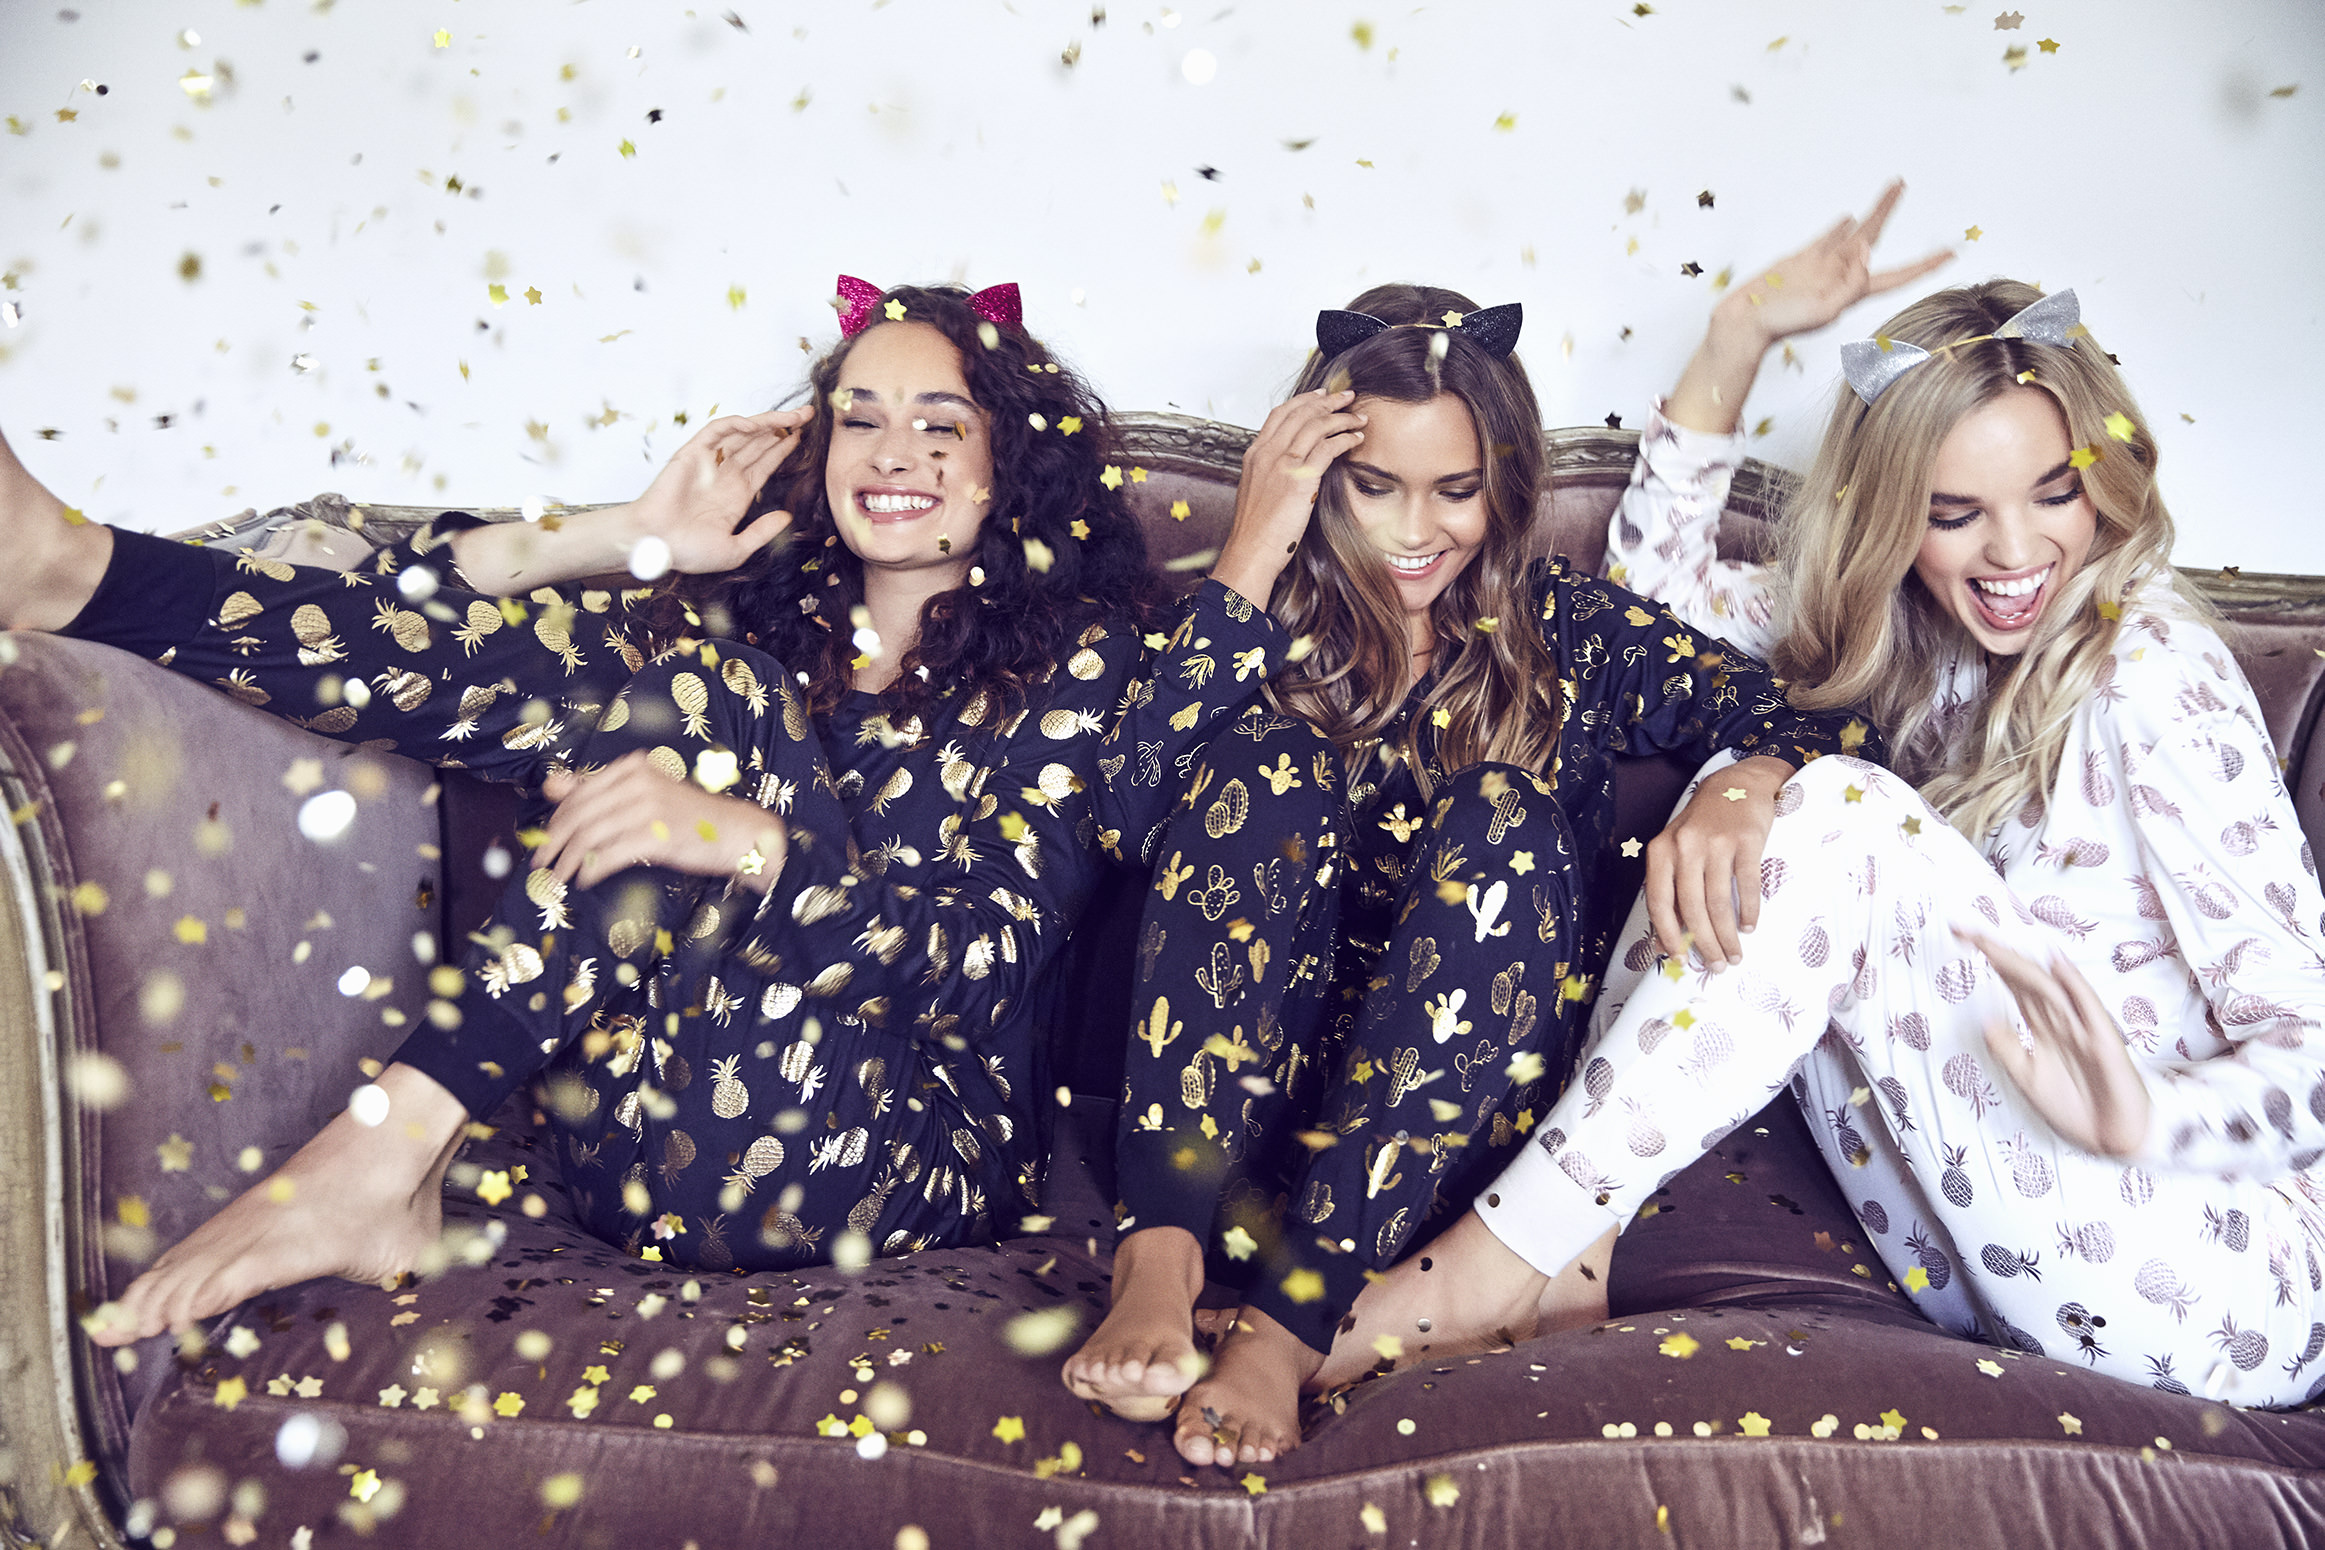 pyjama-campaign-fun-girls-teen-tween-nightwear-lingerie-london-cute-christmas-xmas-7.jpg